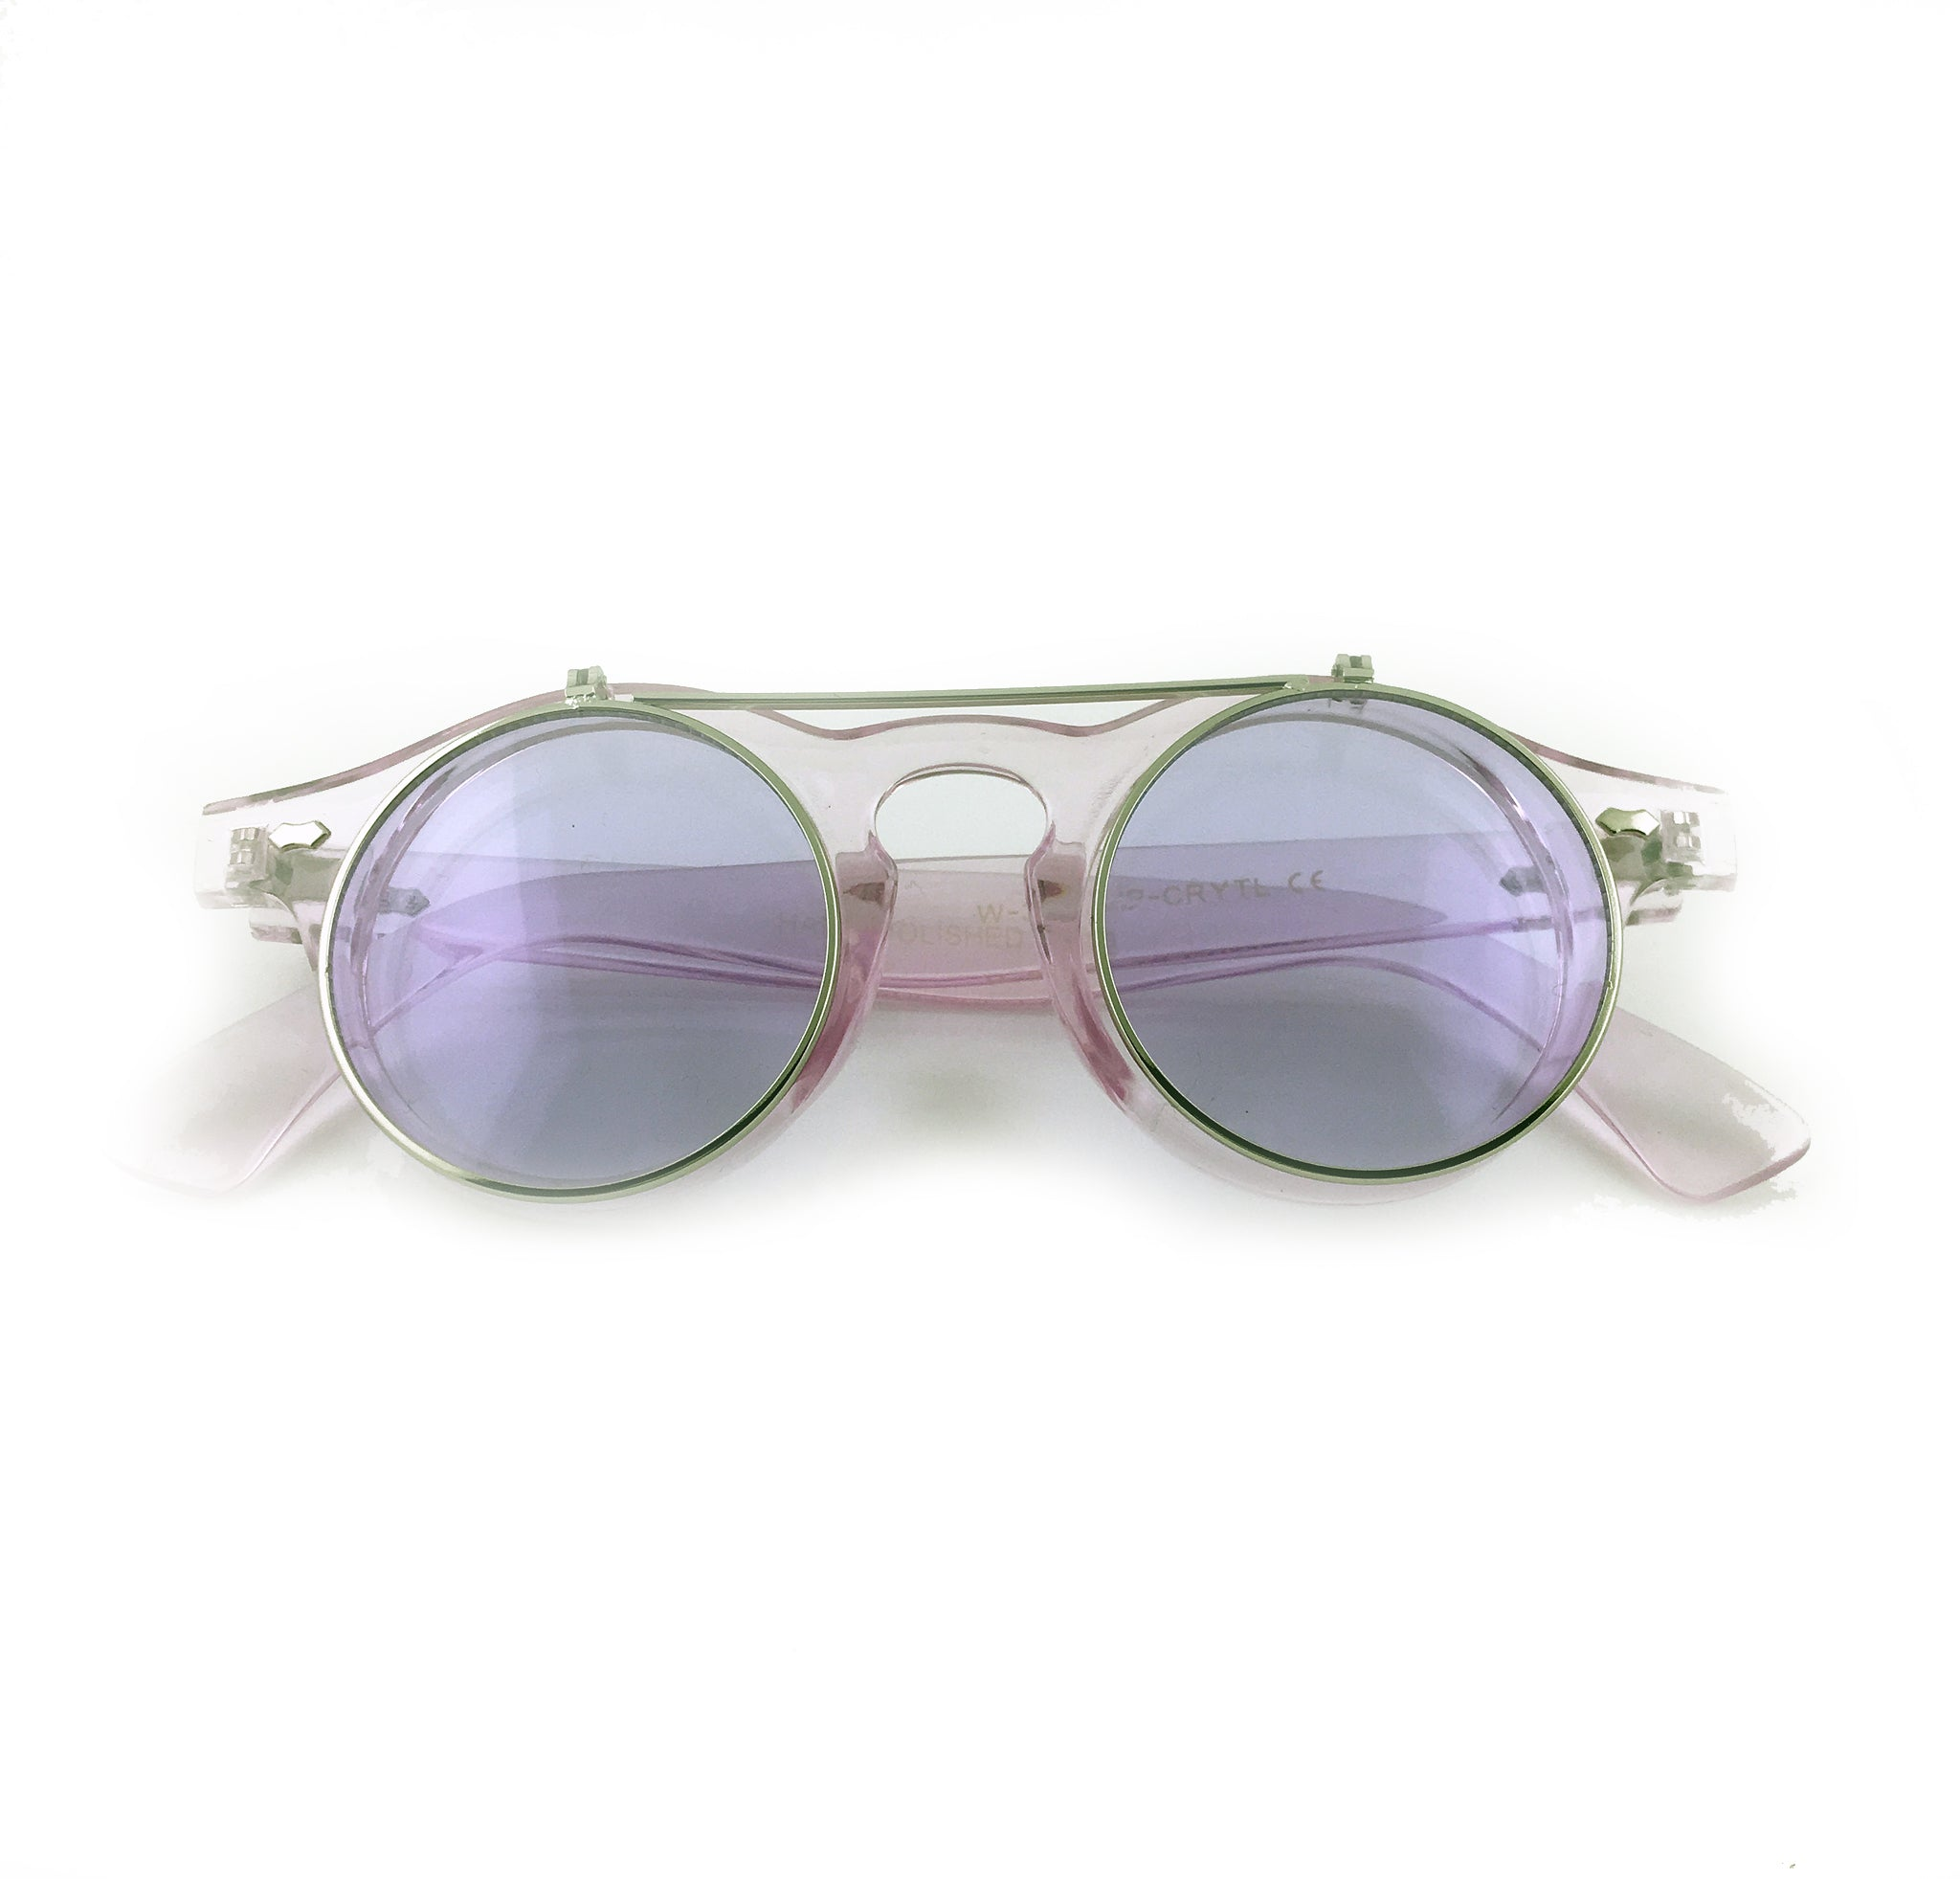 purple tinted flip up sunglasses with clear frame and clear underneath lens | The Perfect Gentleman